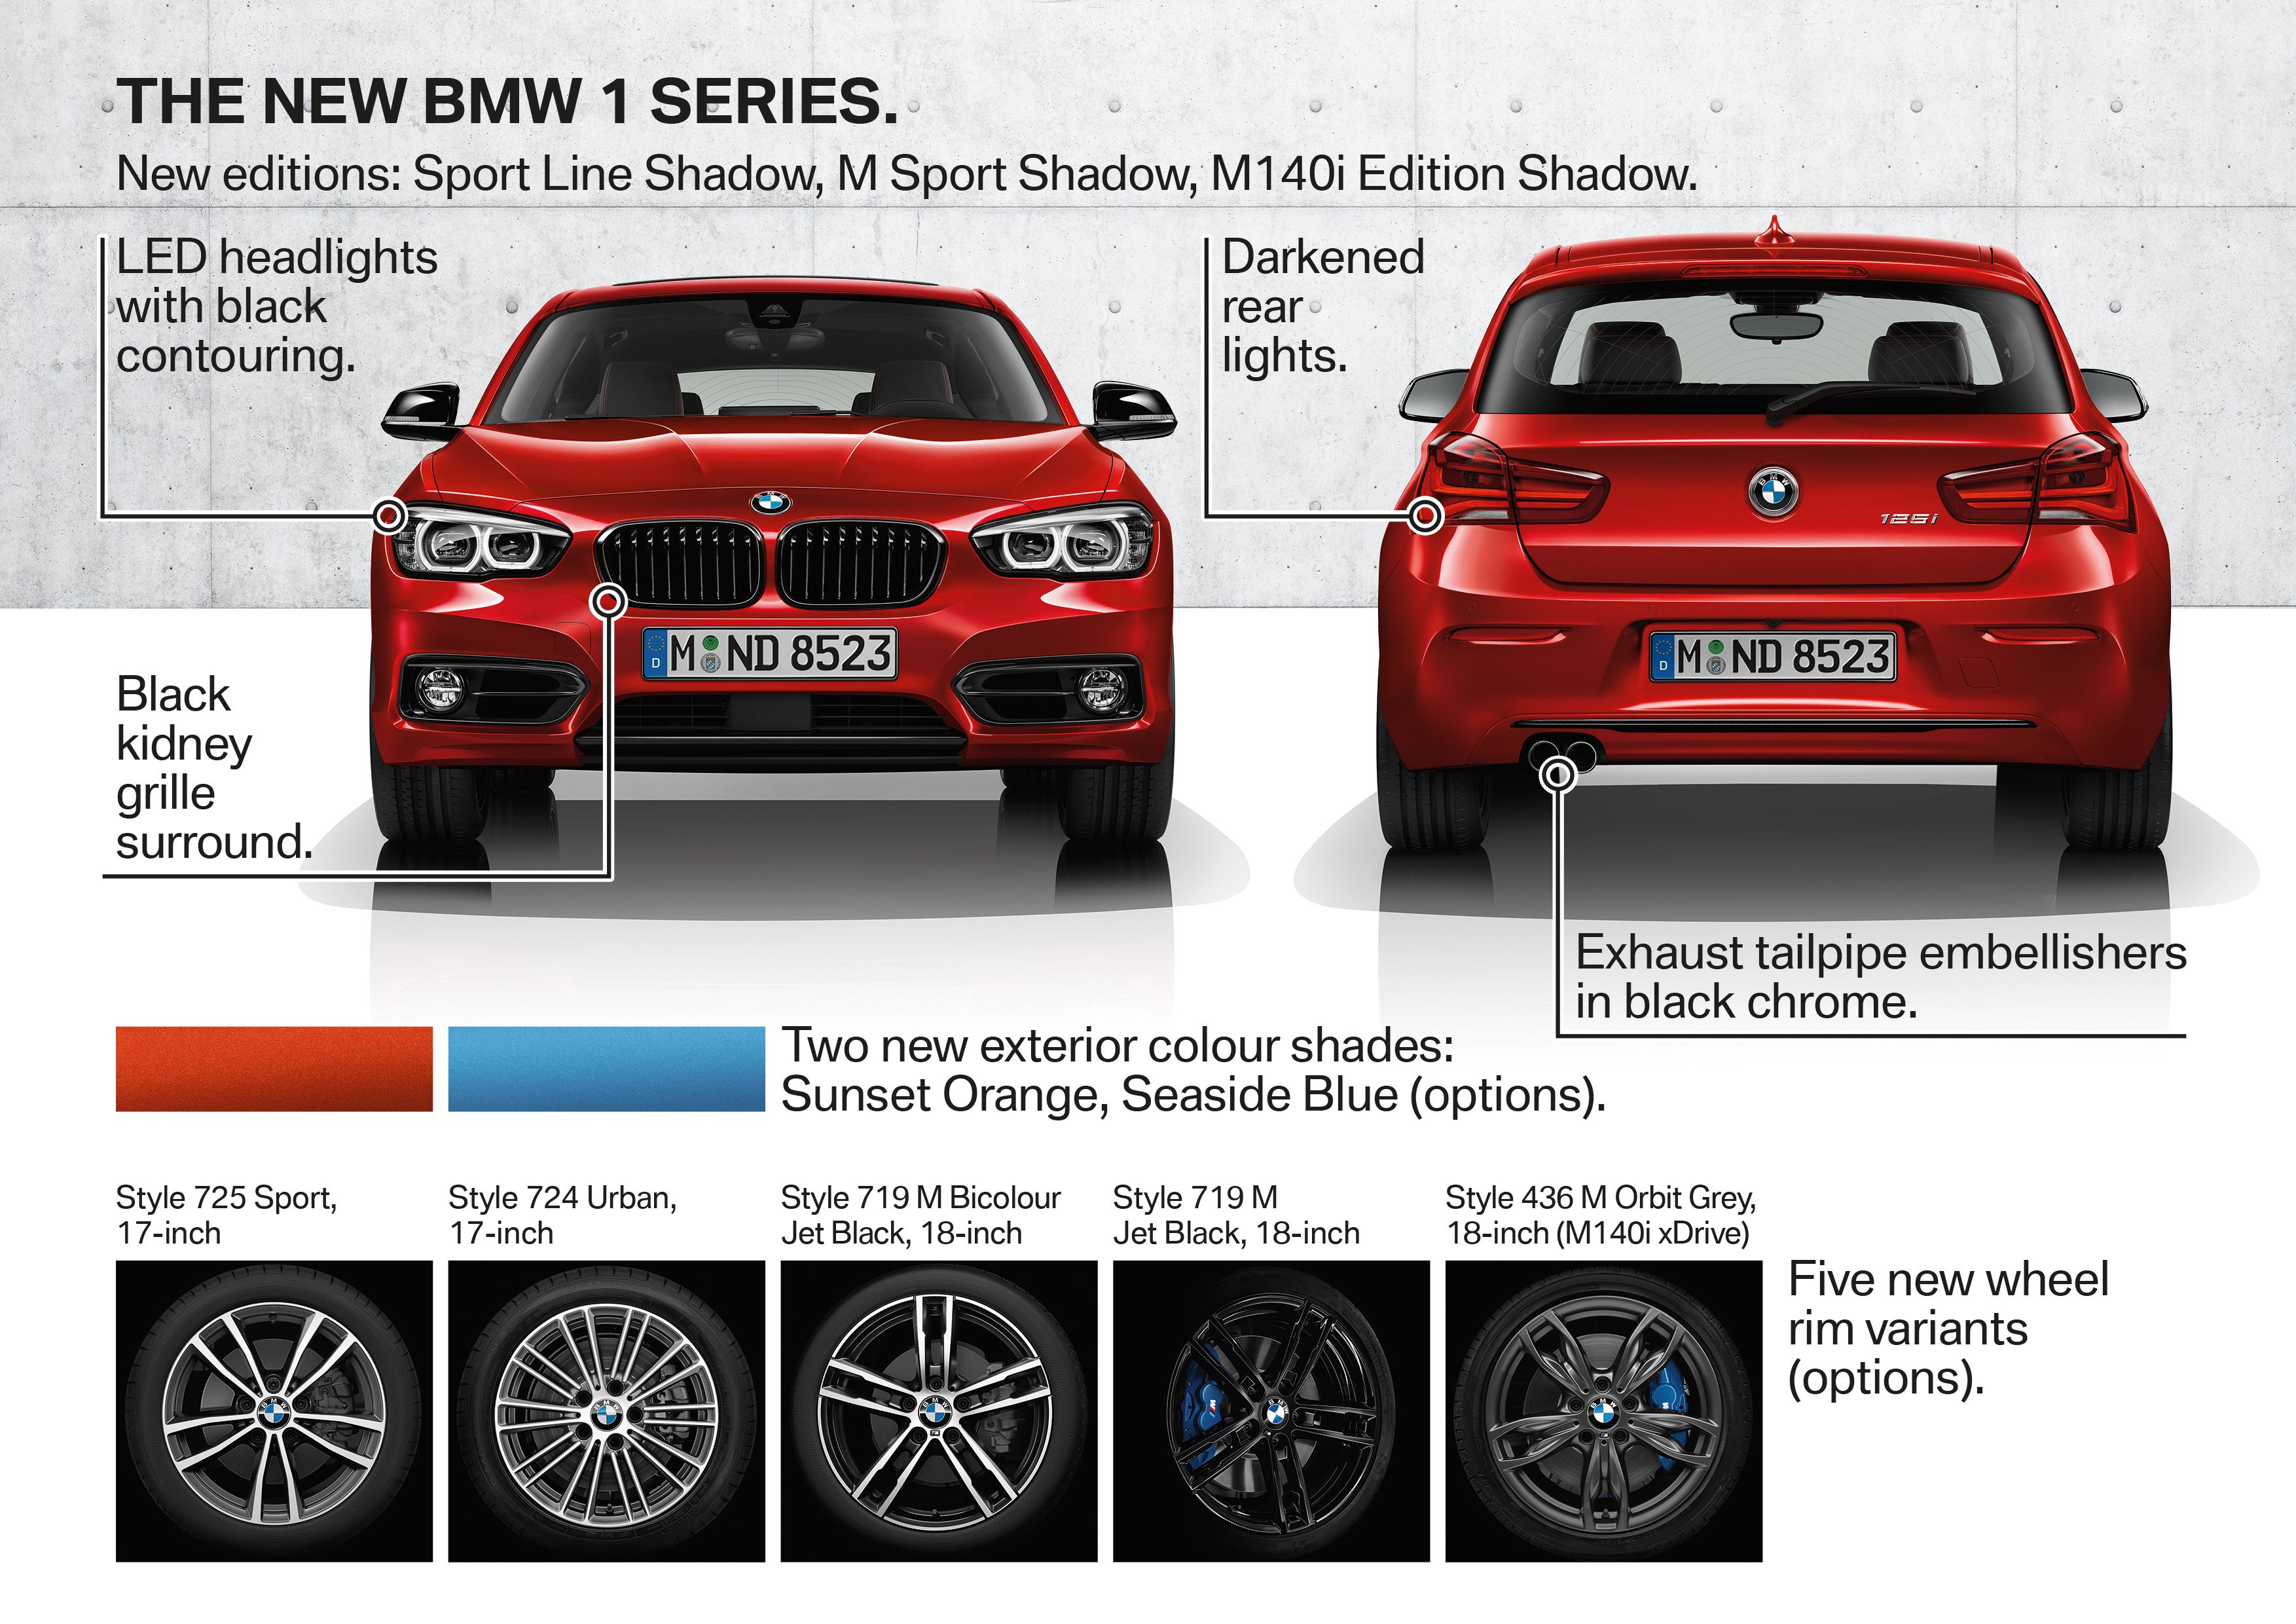 Bmw F20 F21 1series Hatchback Facelift Editionshadow